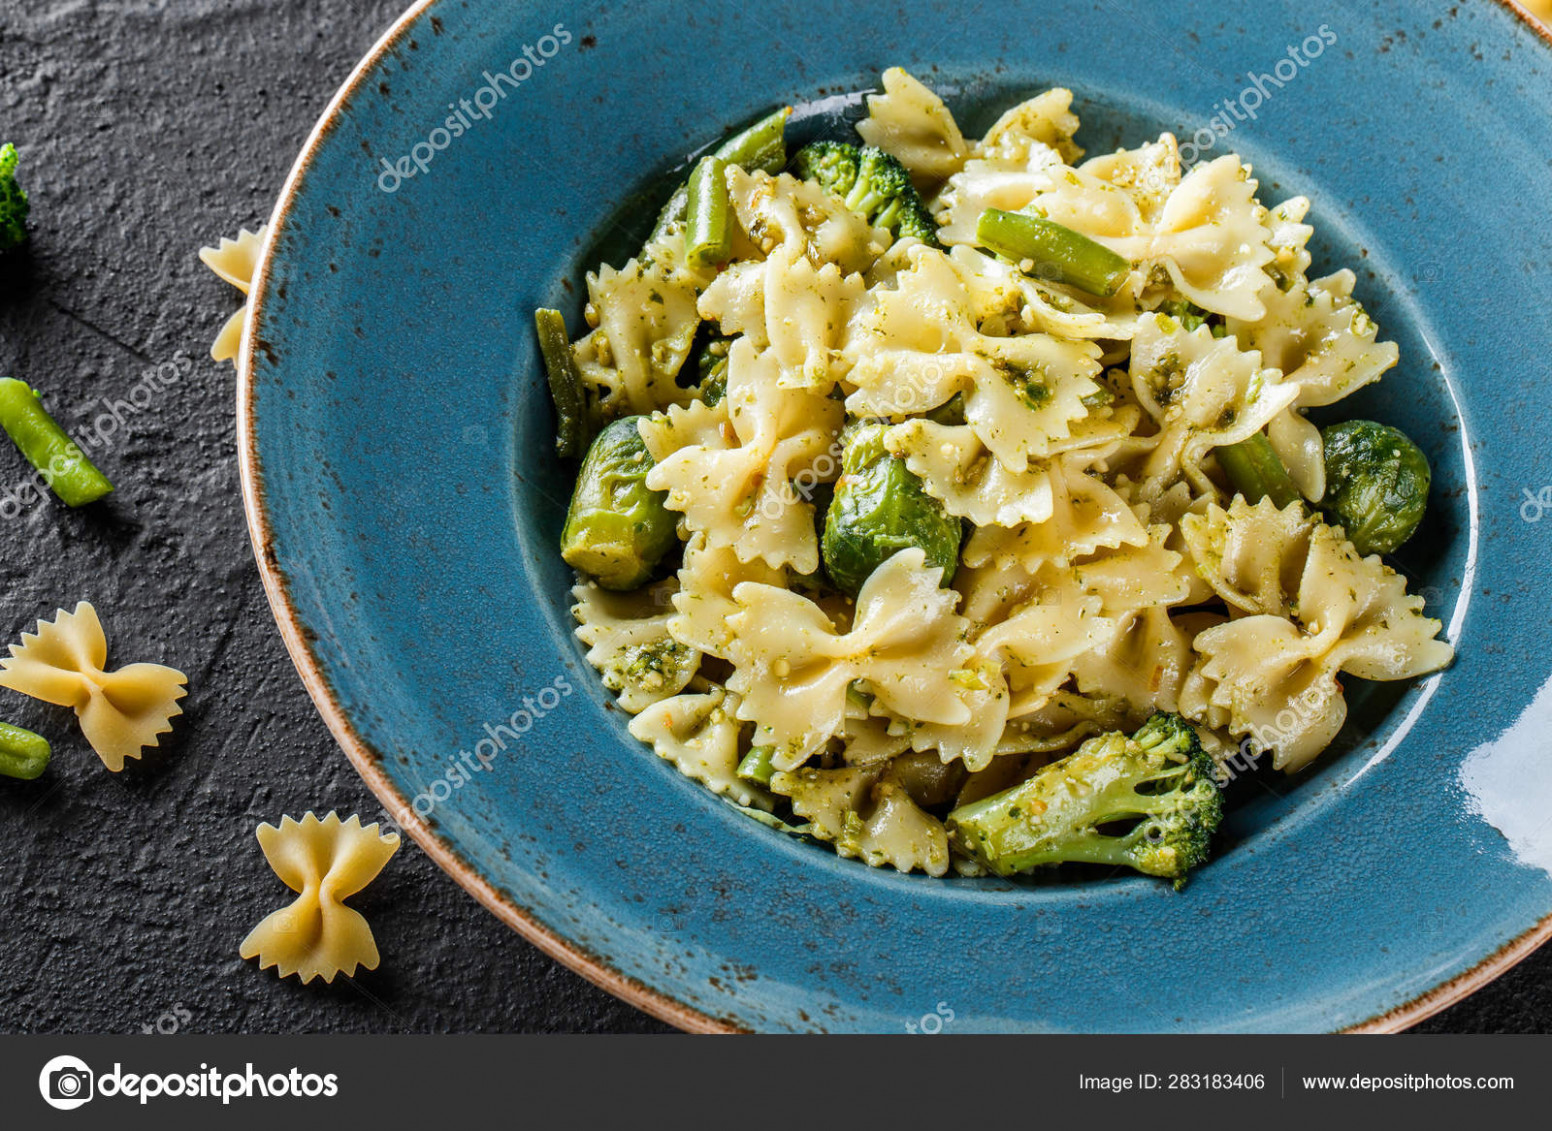 Vegan Farfalle Pasta In A Spinach Sauce With Broccoli ..